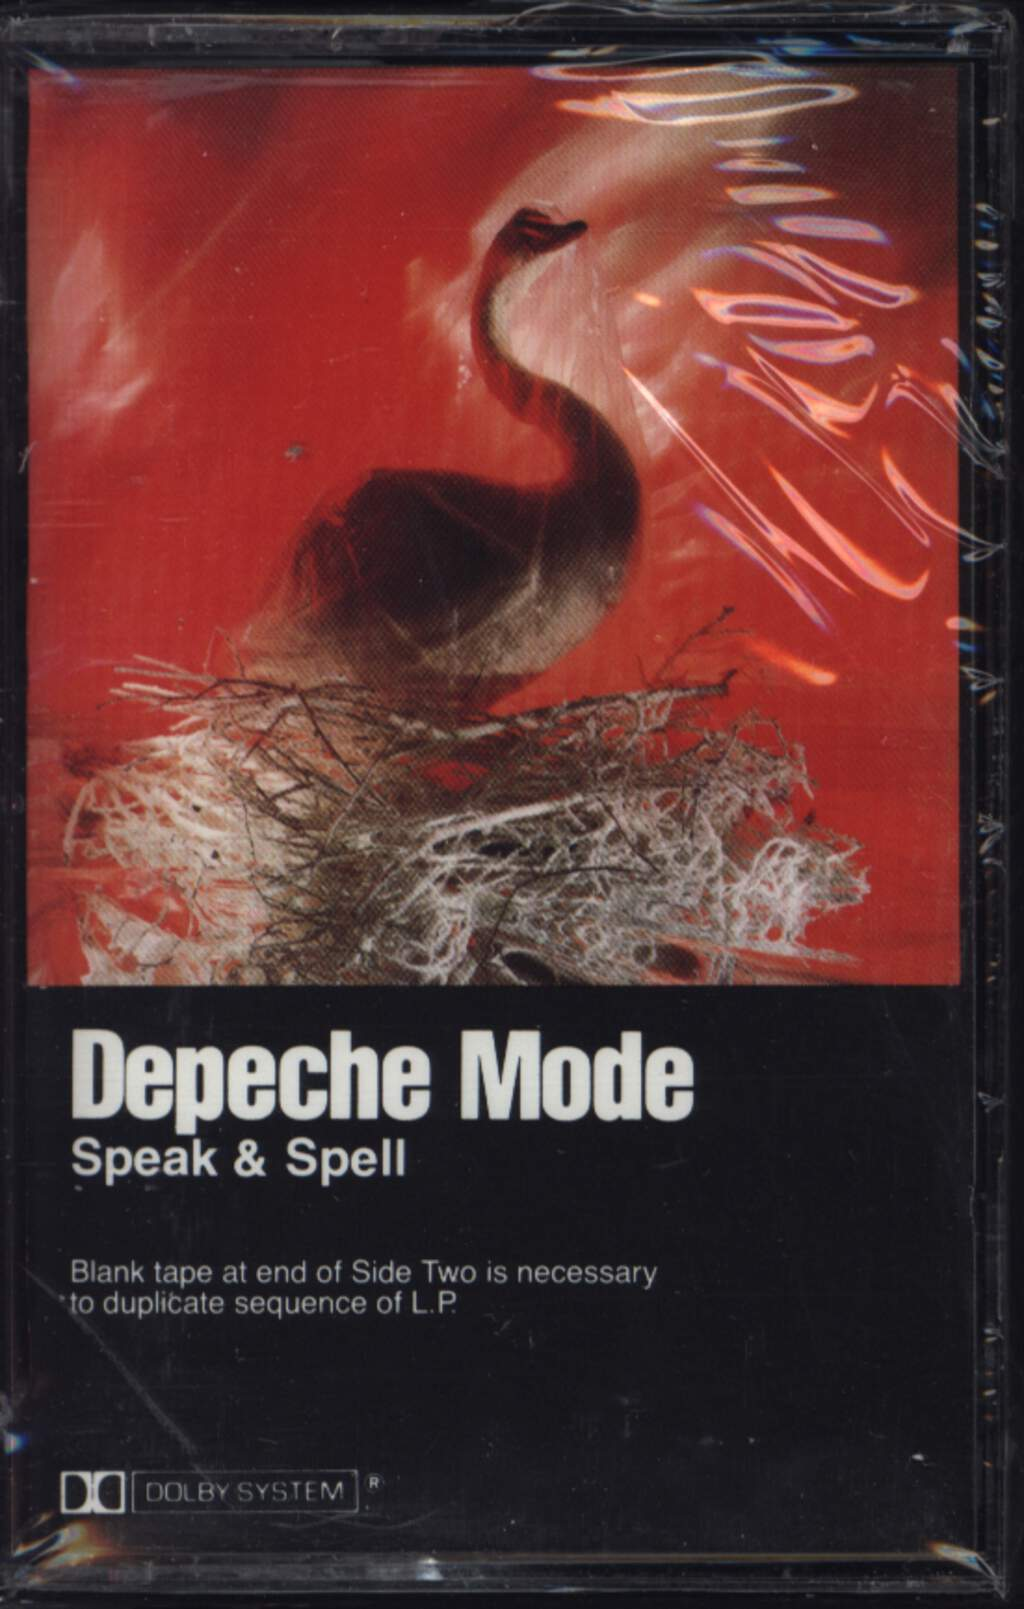 Depeche Mode: Speak & Spell, Compact Cassette